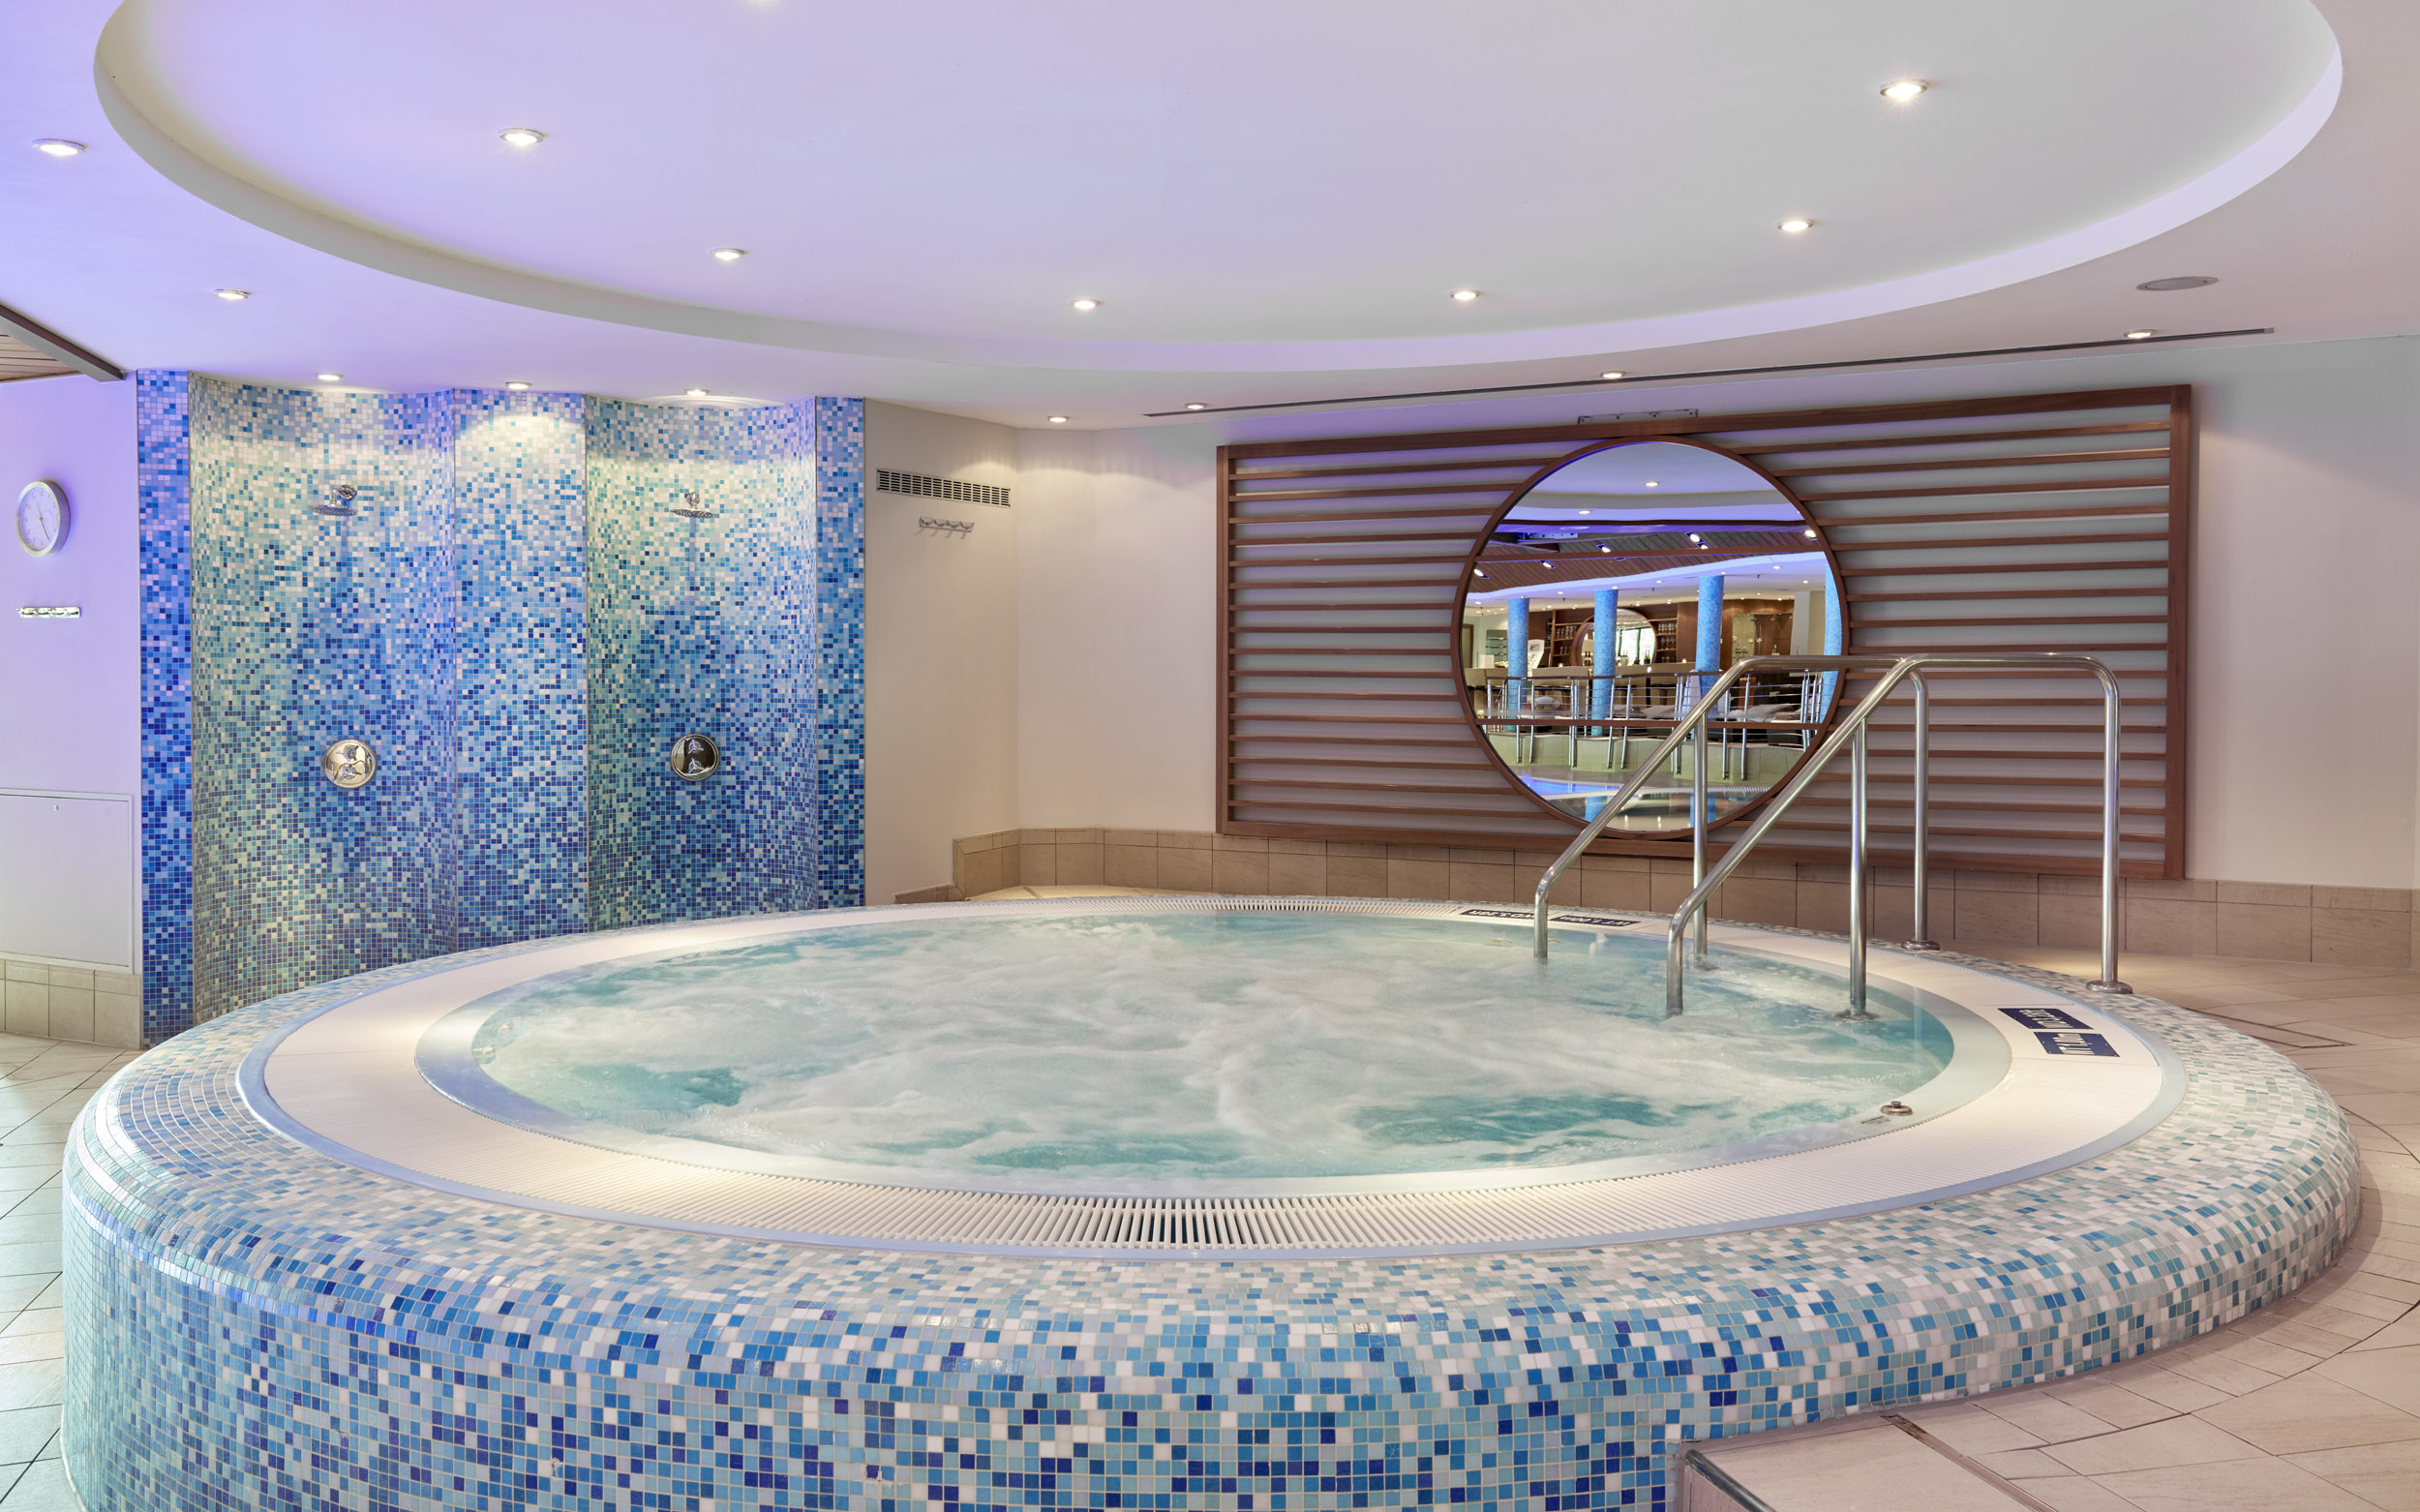 Jacuzzi Pool Preise Spa Intercontinental Wellness In Berlins Mitte